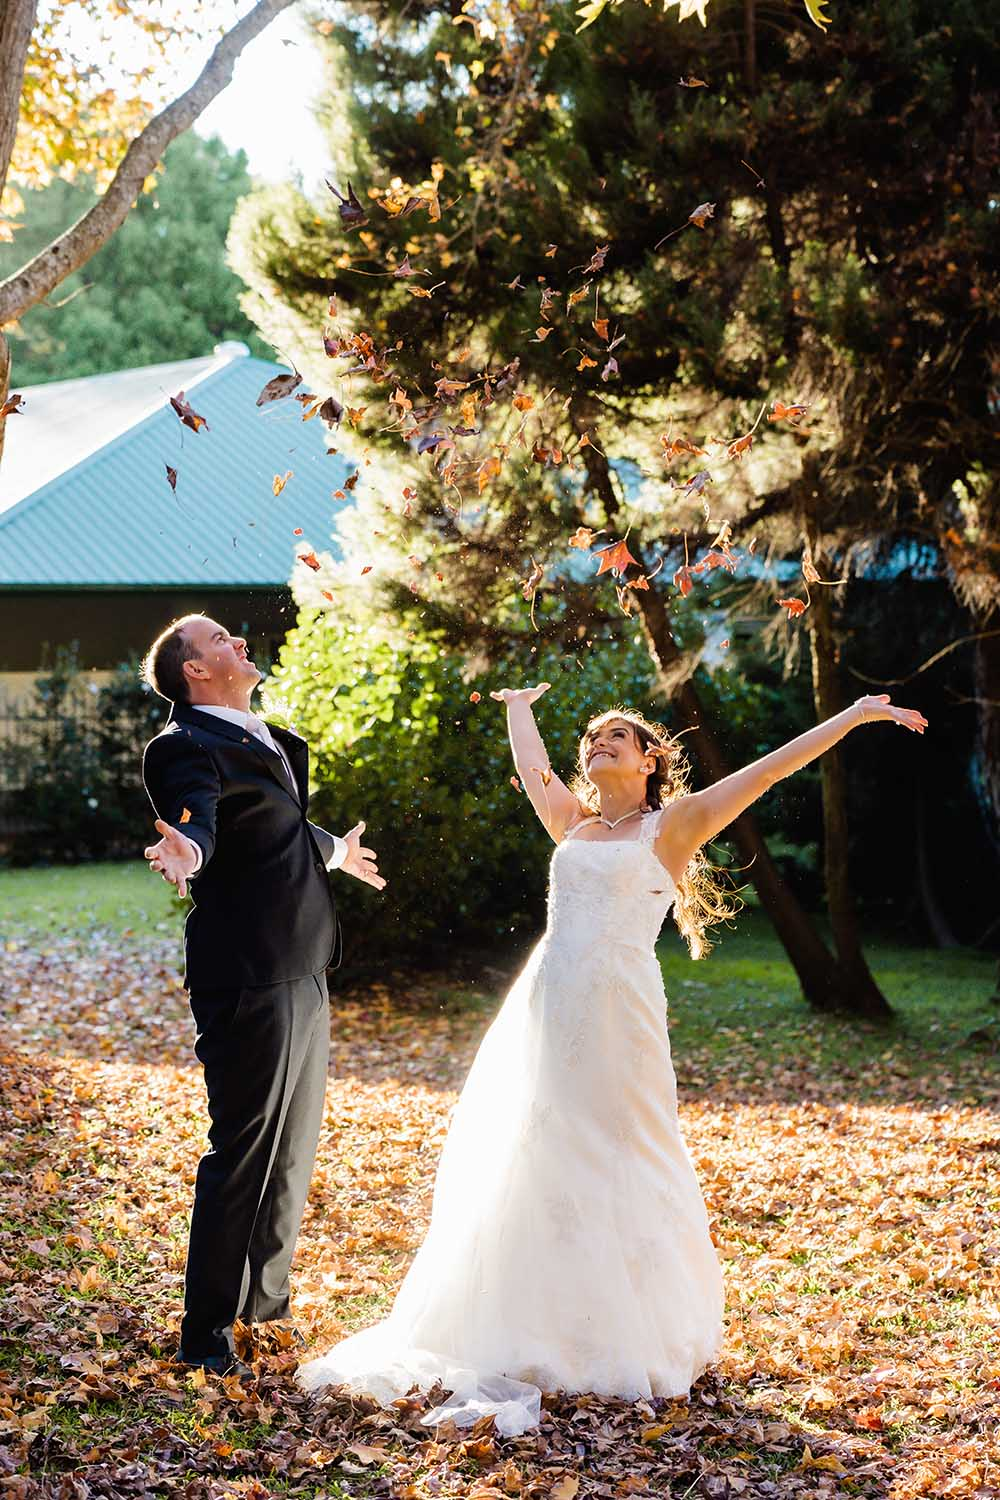 Wedding Photography Couple Throwing Leaves